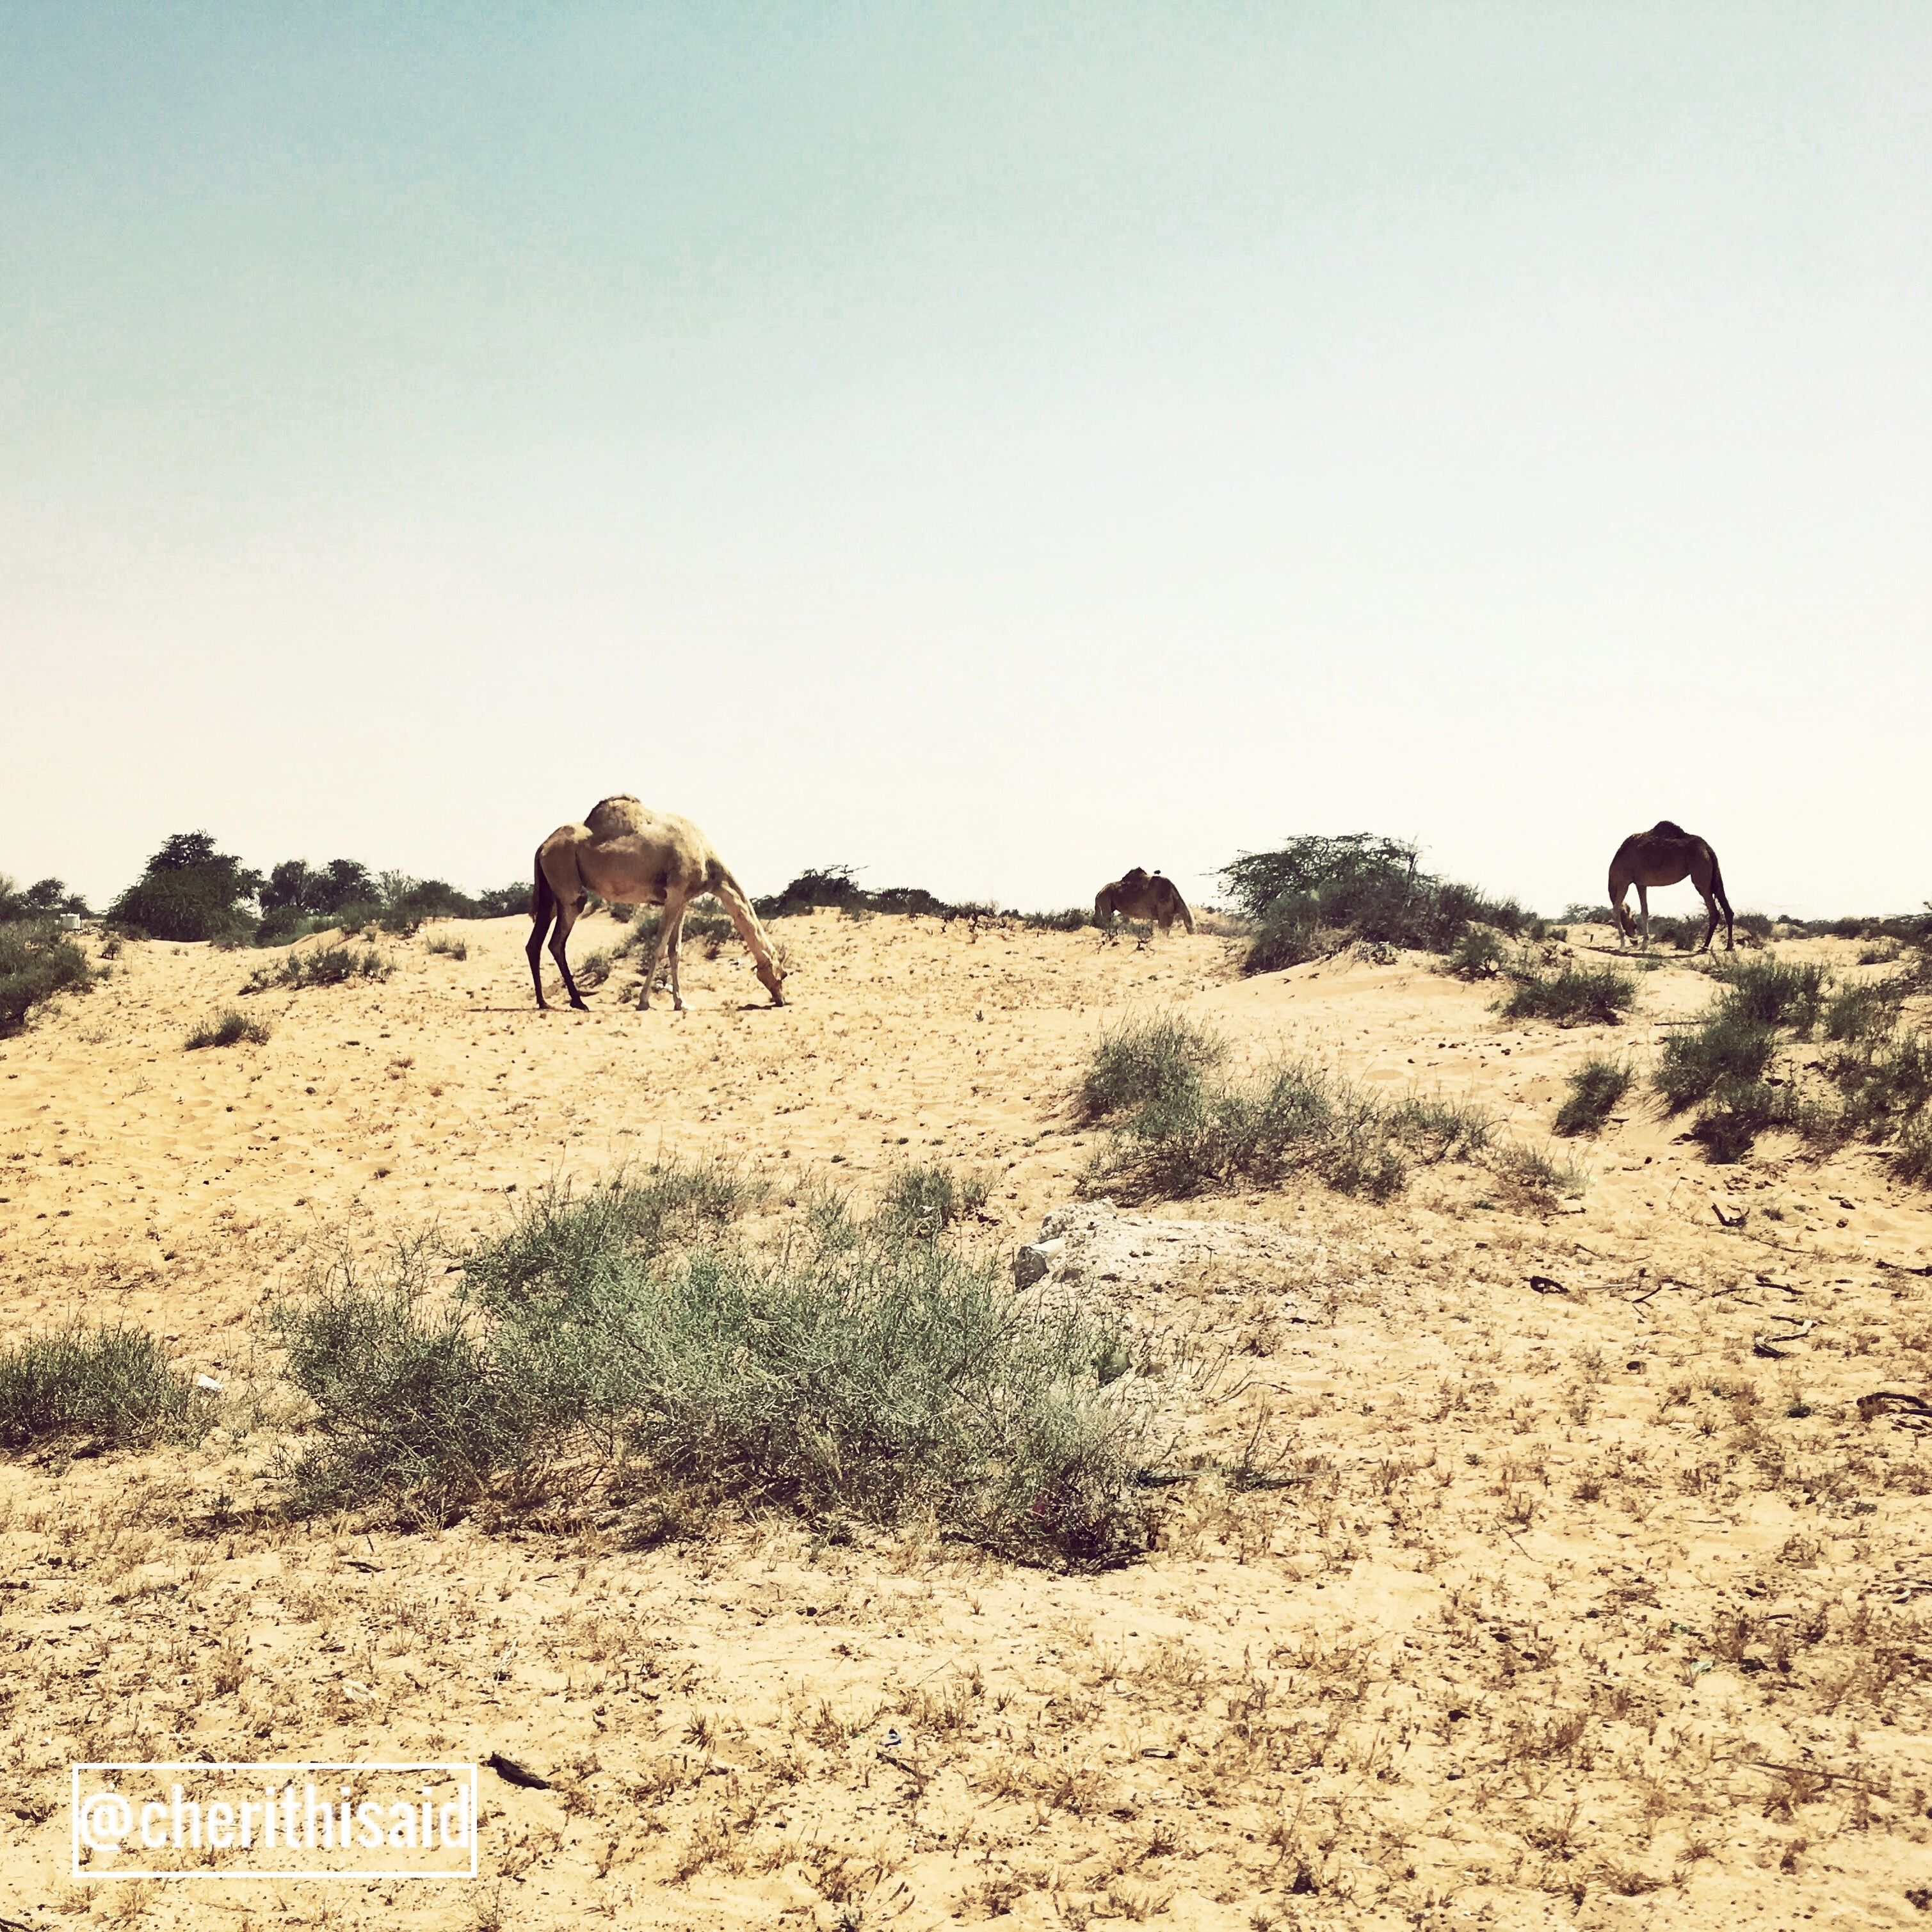 Camels near the Empty Quarter in Ras Al Khaima, UAE